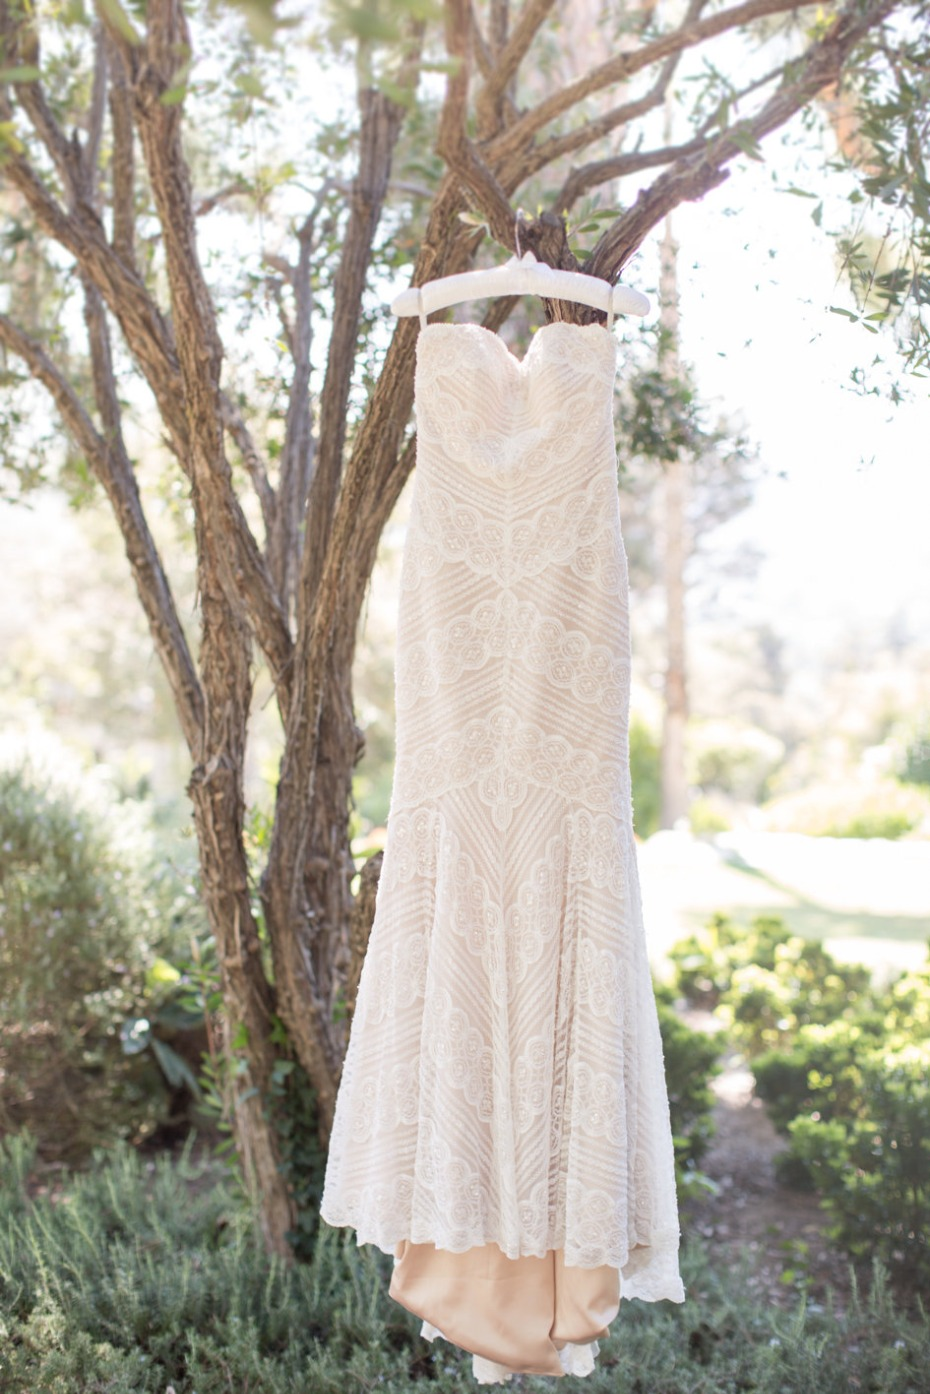 Gorgeous lace gown with blush underlay